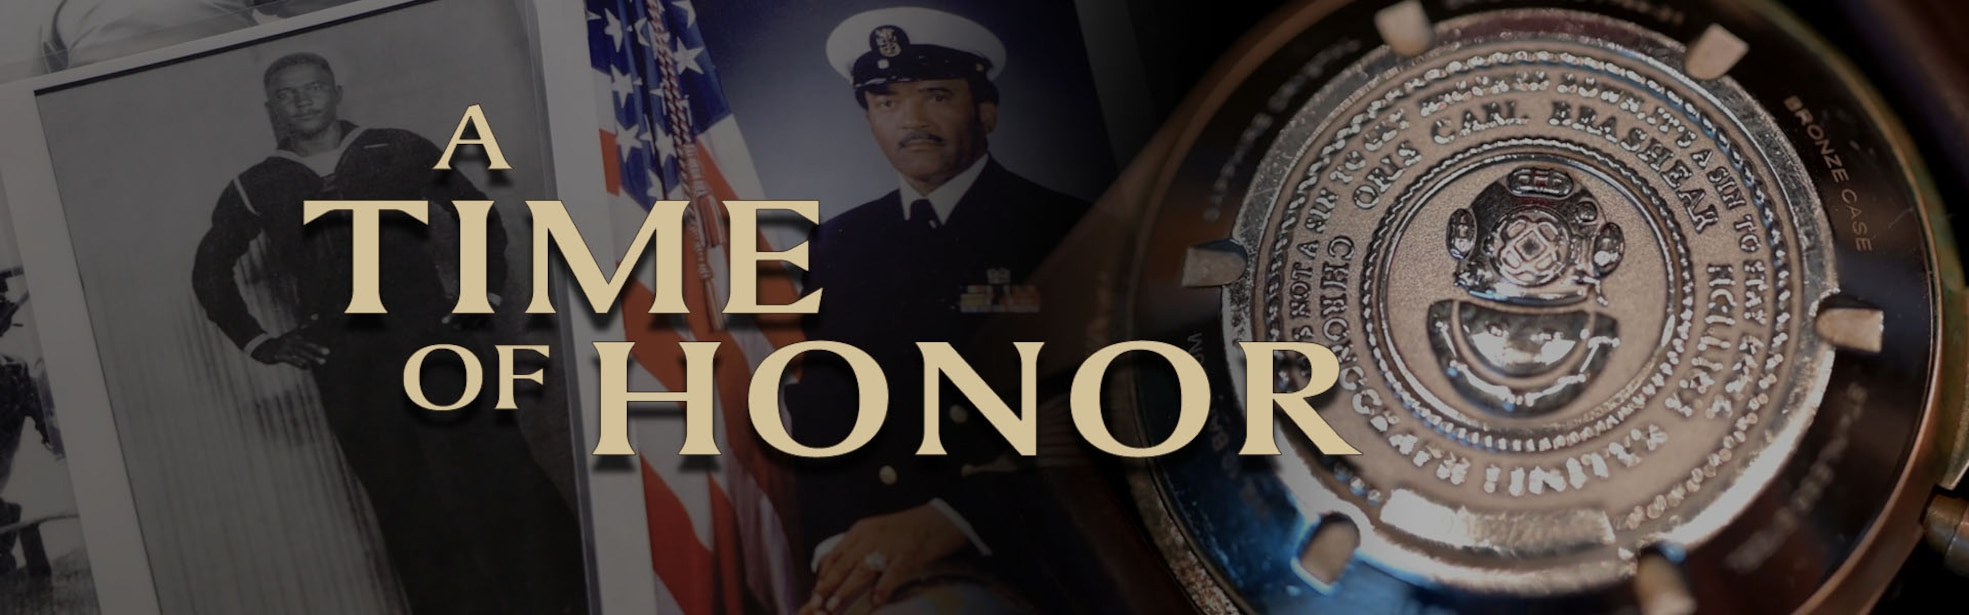 A Time of Honor written in front of 2 photos of a Sailor and a watch back with a dive helmet on it.